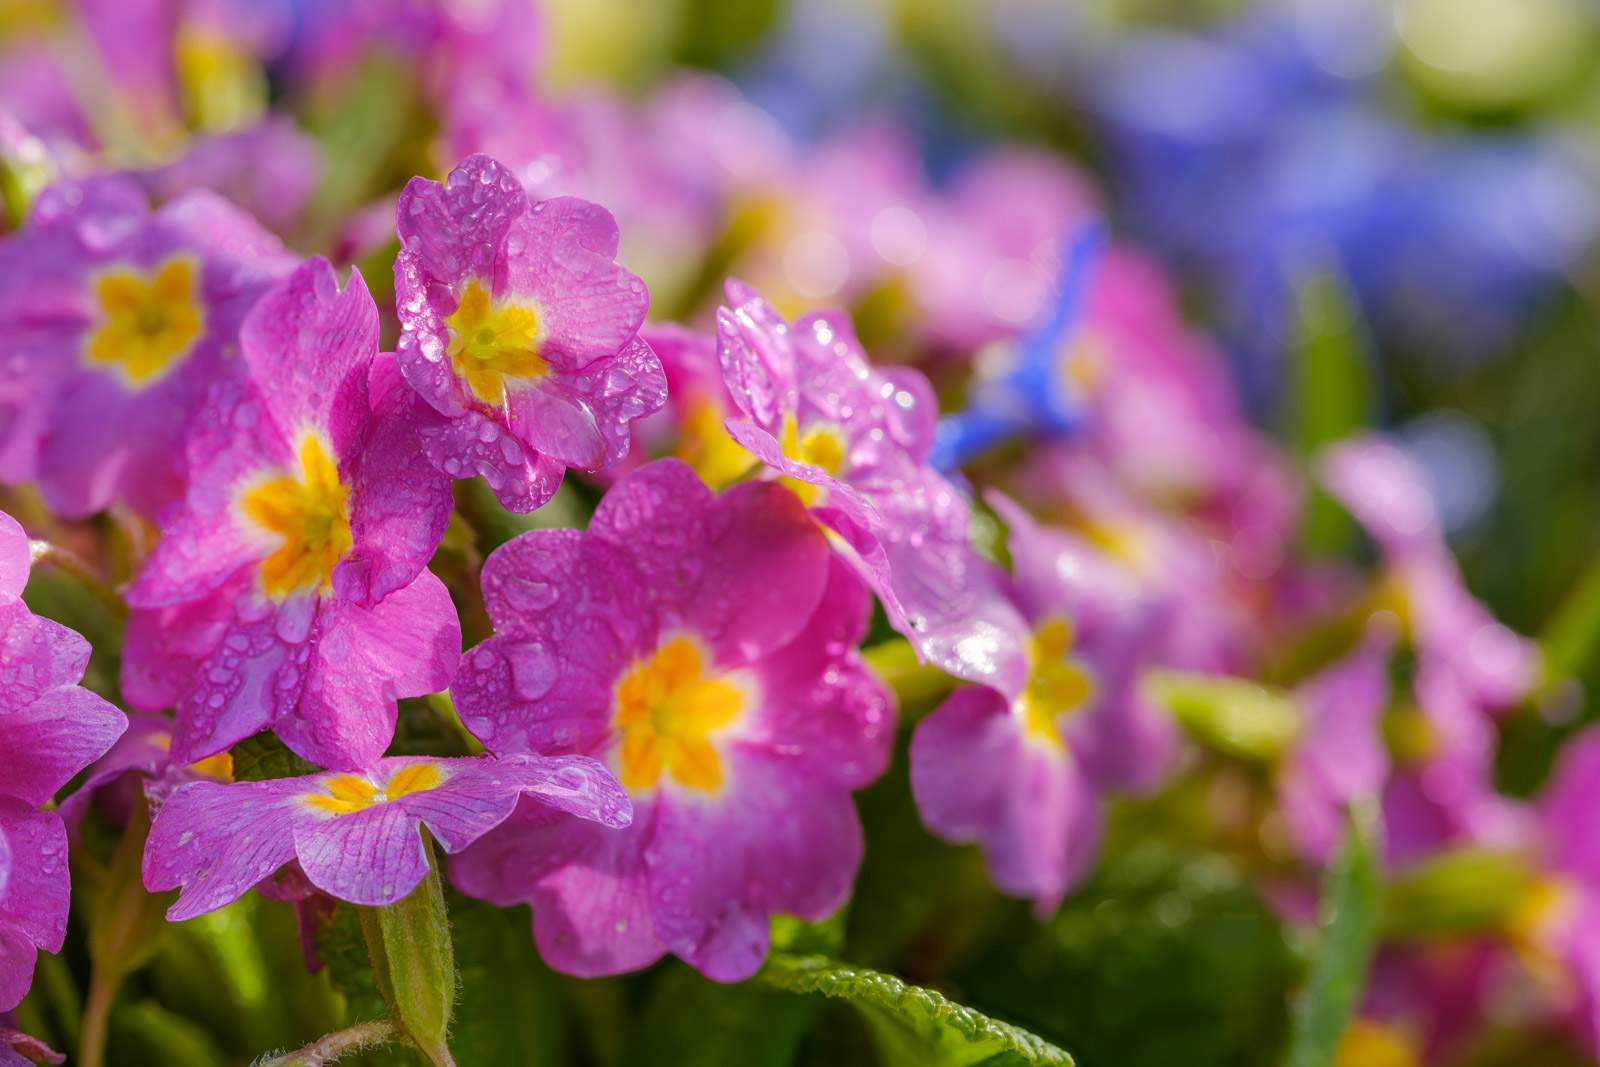 Pink primrose with morning dew (Primula).